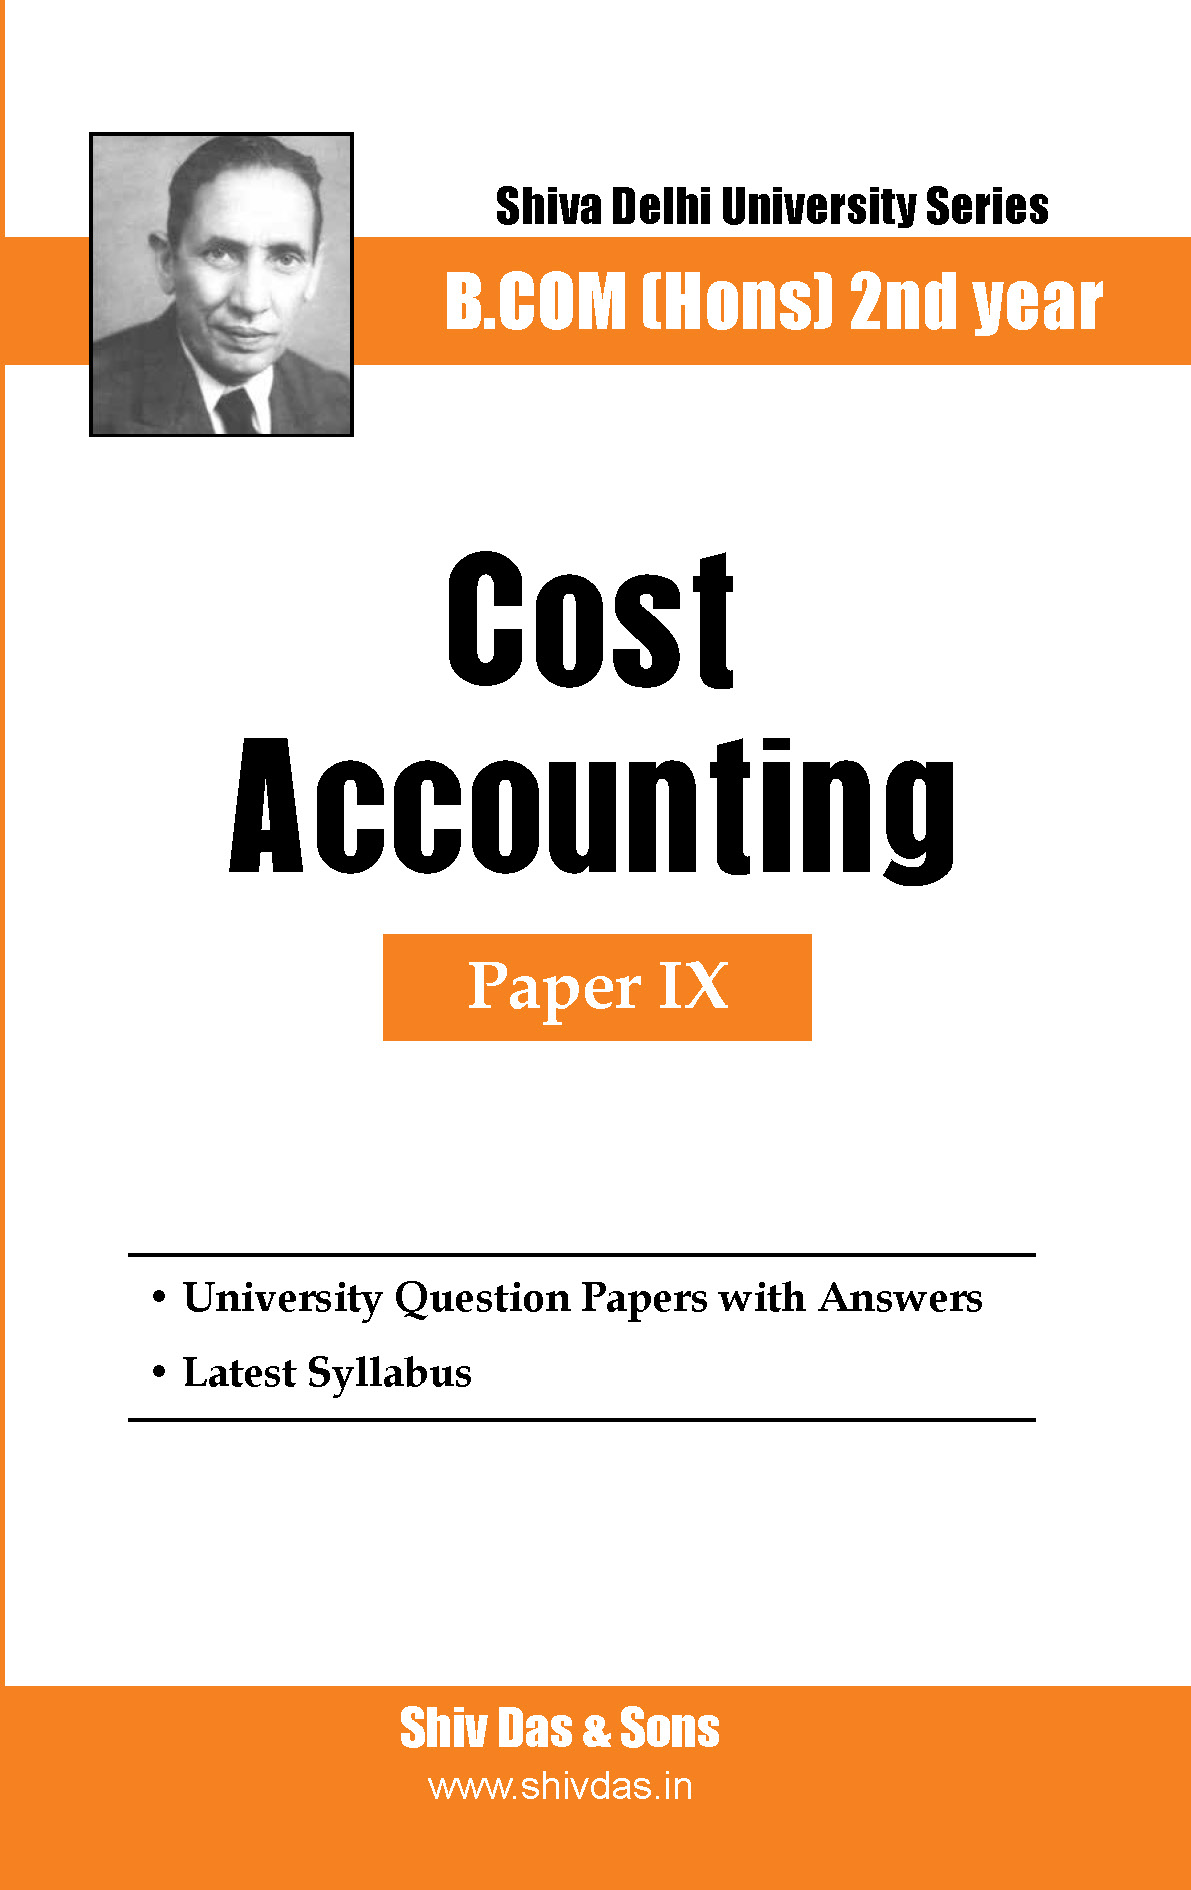 B.Com Hons-SOL/External-2nd Year-Cost Accounting-Shiv Das-Delhi University Series